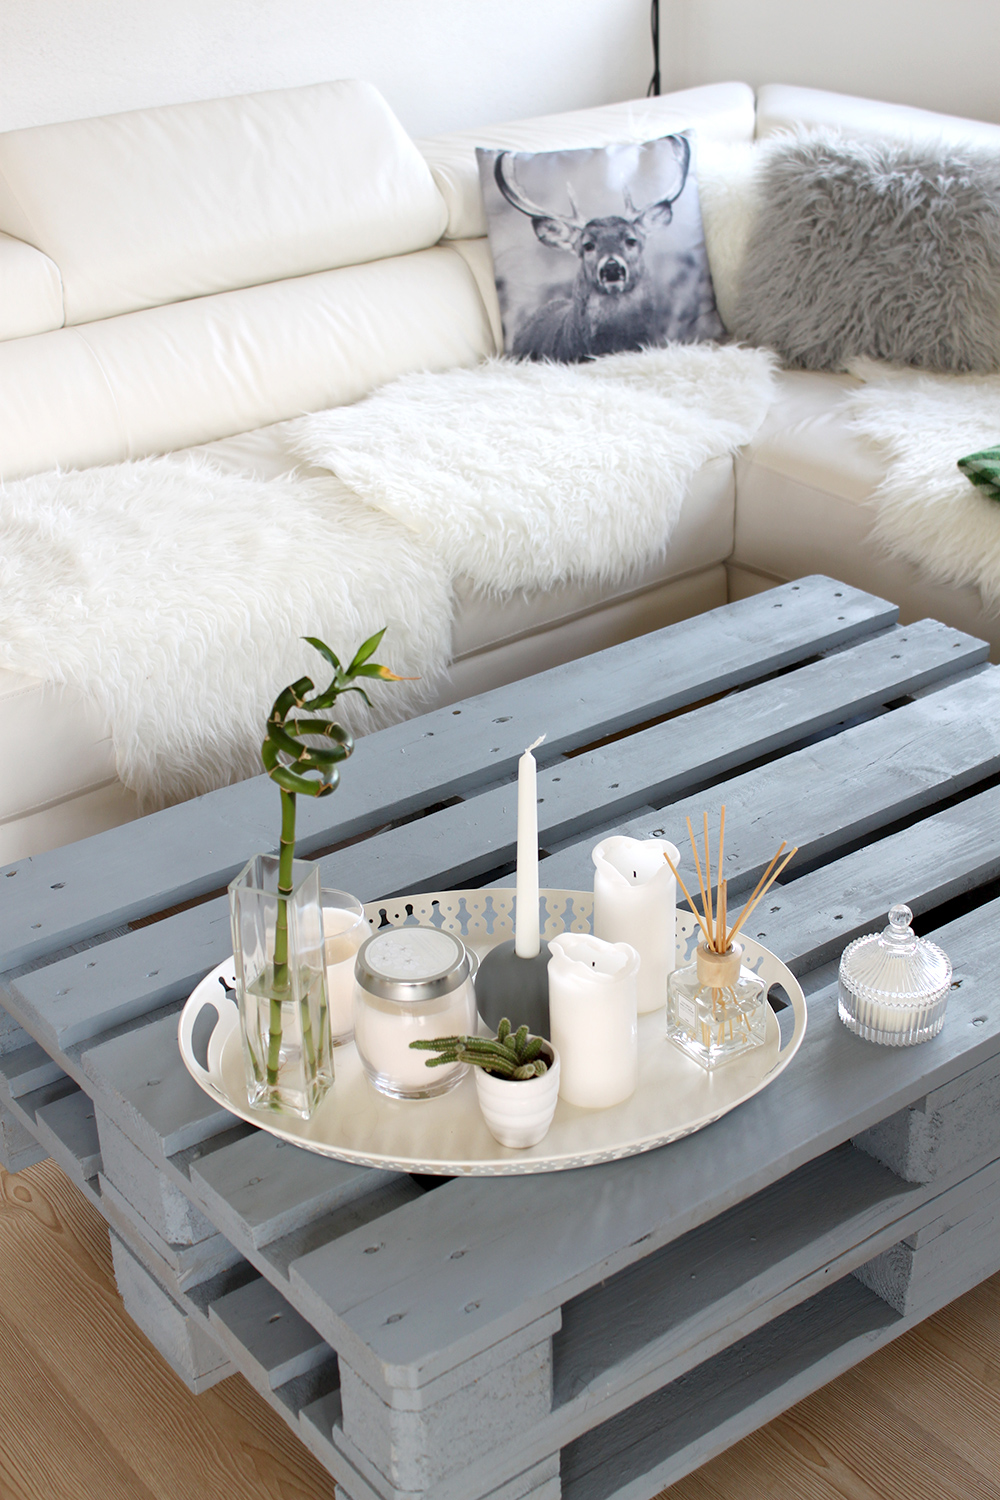 who is mocca, fashionblog, interiorblog, beautyblog, tirol, austria, oesterreich, dekoration idee, wohnzimmer, living room, europaletten tisch couchtisch diy, palettentisch, couchtisch, sofa, felldecke, ikea, primark,